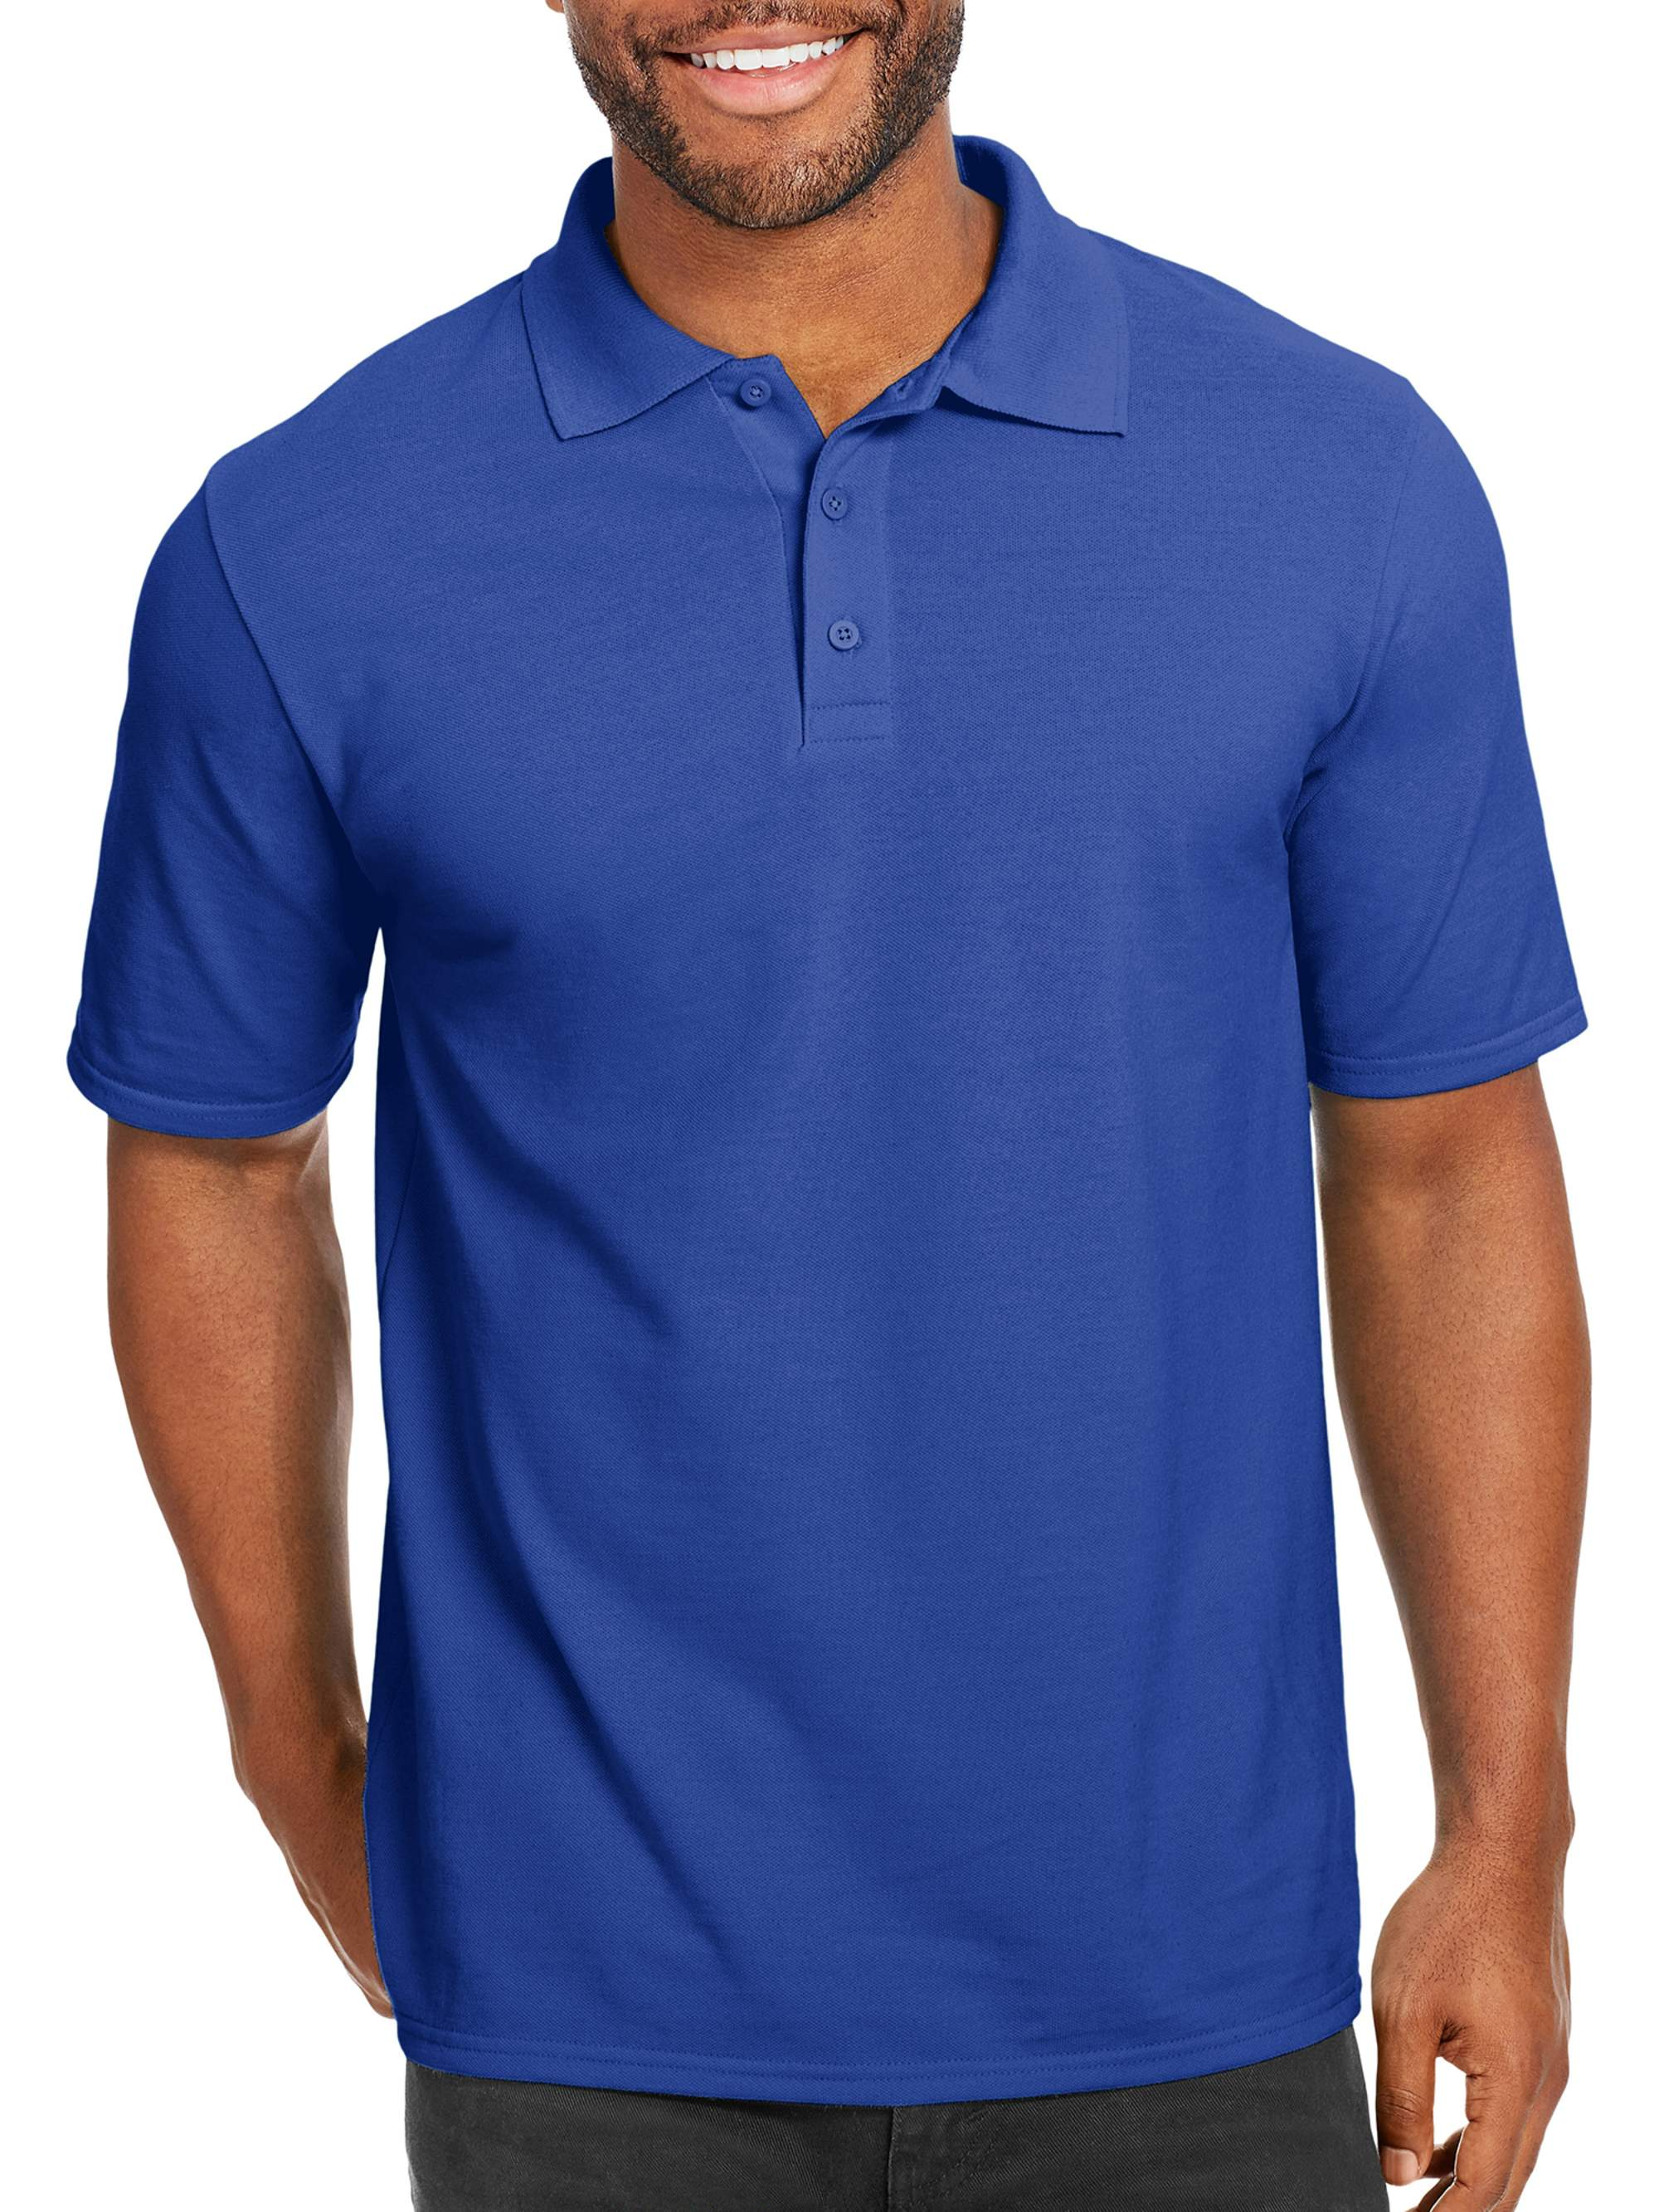 52588491 Hanes - Hanes Men's x-temp with fresh iq short sleeve pique polo shirt -  Walmart.com